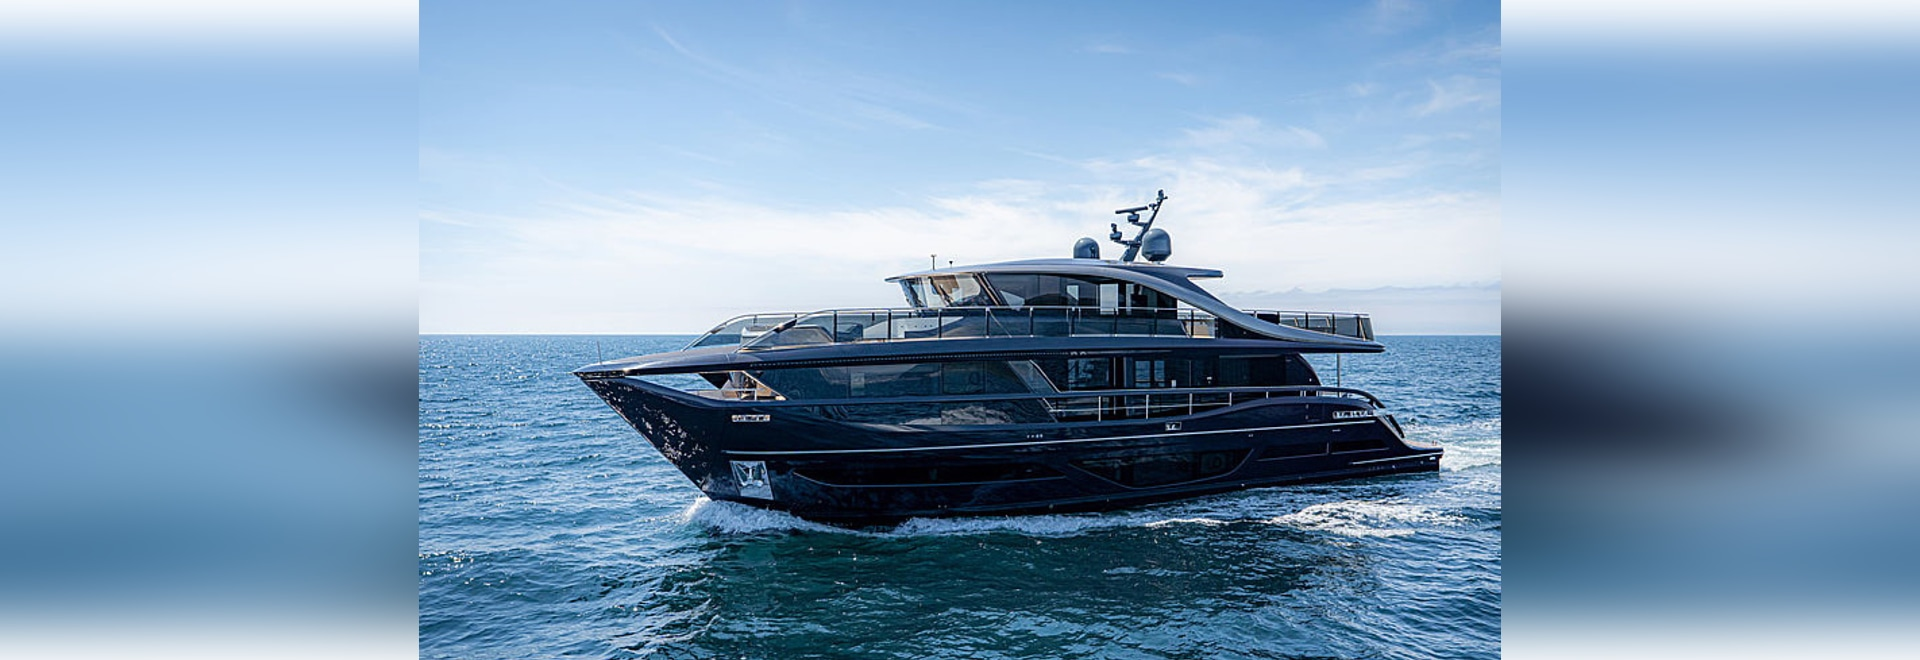 First Princess X95 begins sea trials in Plymouth